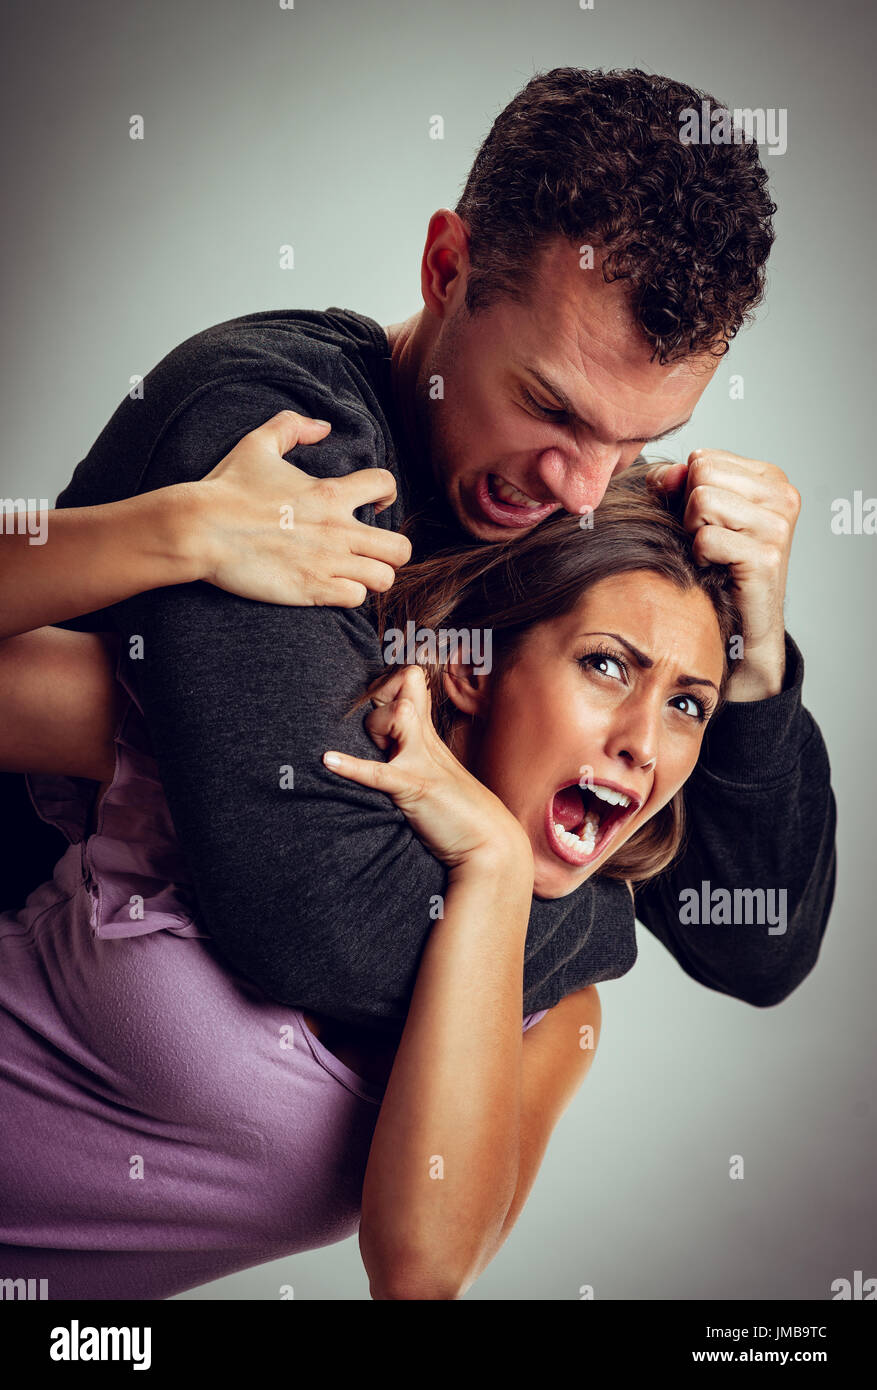 Angry aggressive husband trying to hit and choking his wife. - Stock Image